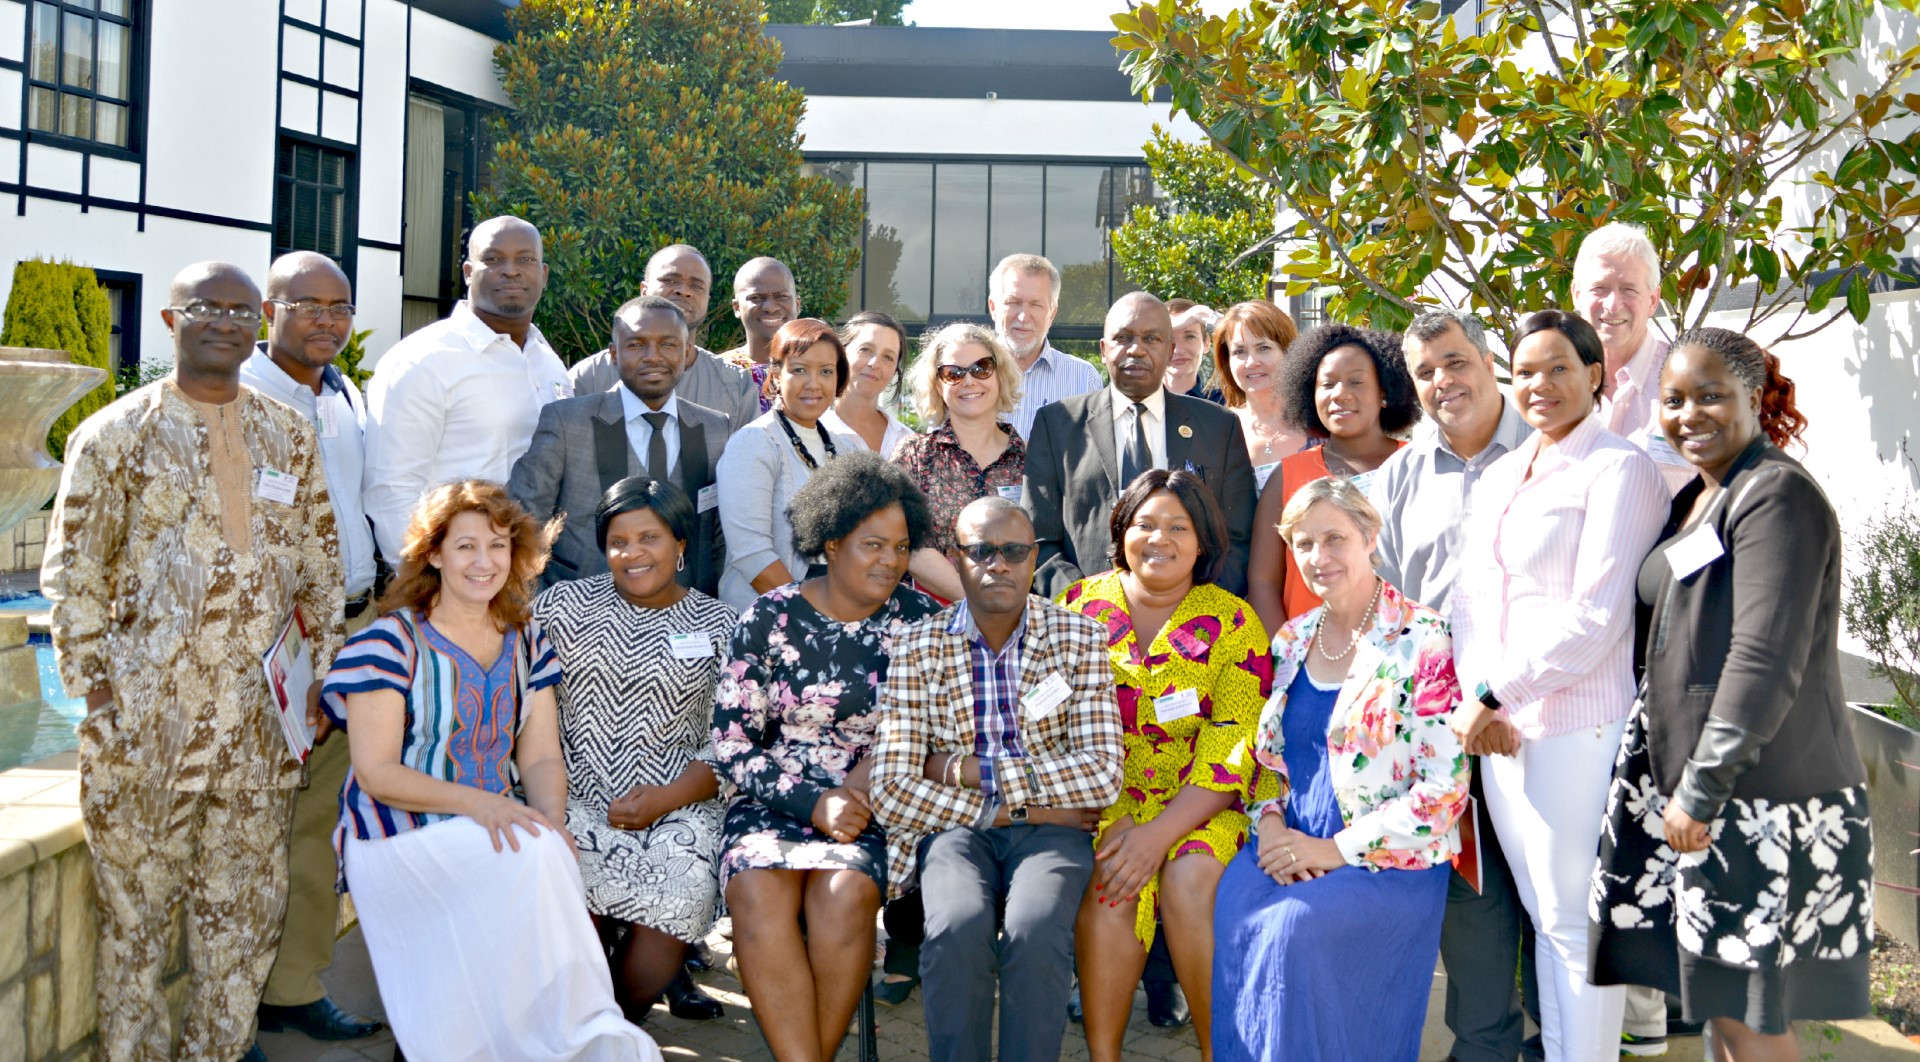 Participants at the Third African Health Research Ethics Symposium.